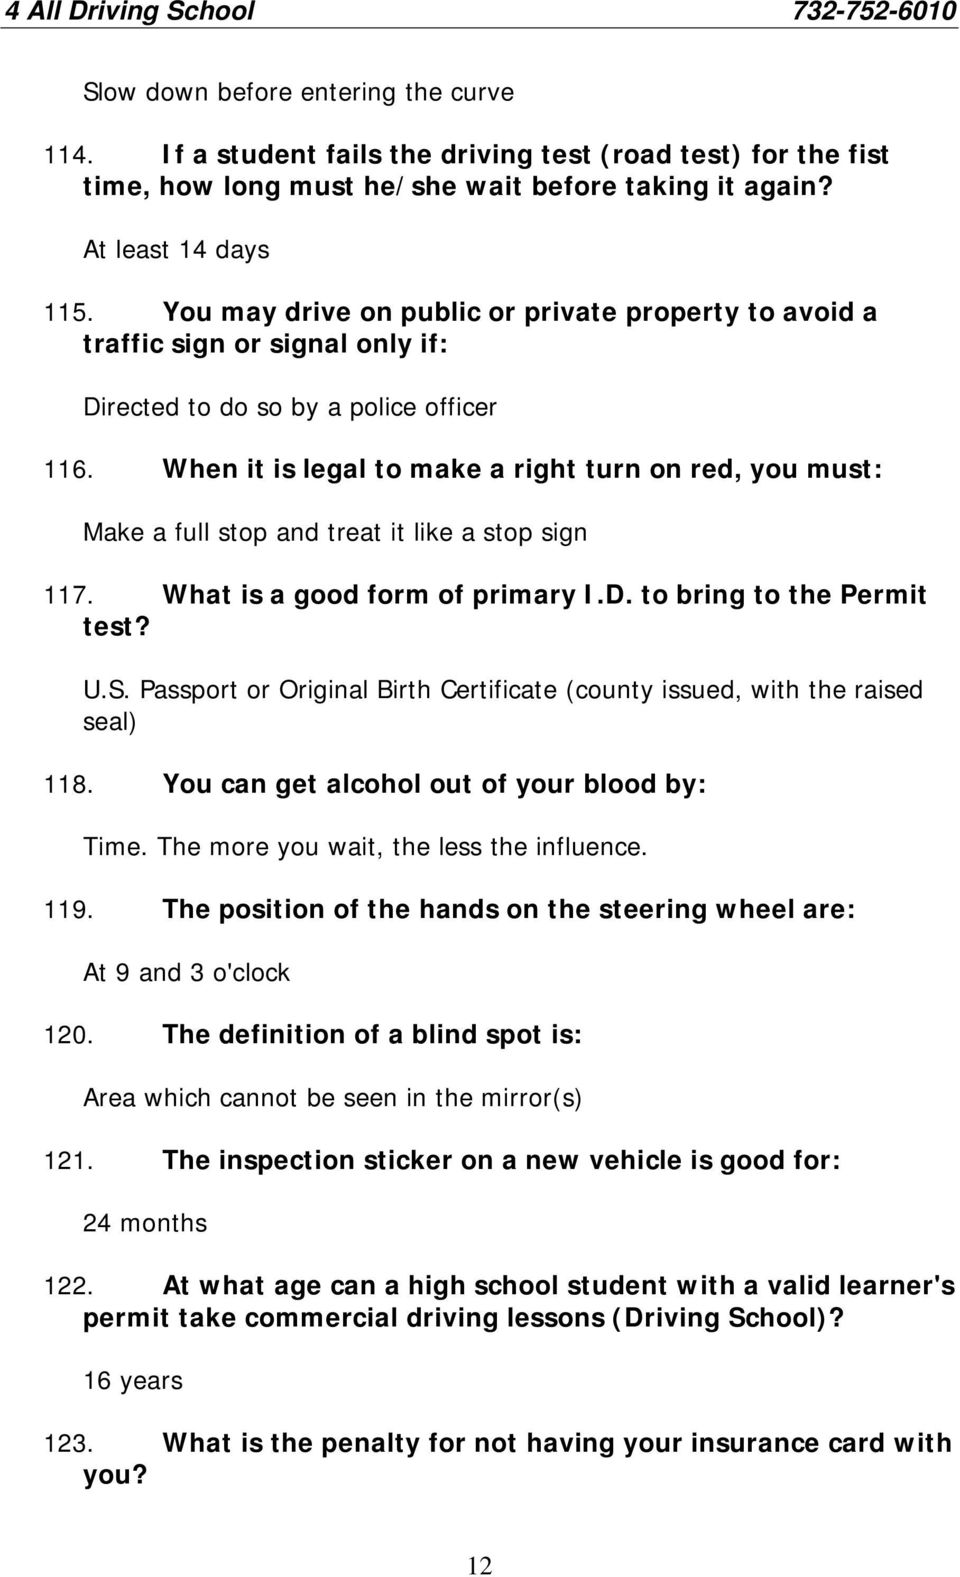 When it is legal to make a right turn on red, you must: Make a full stop and treat it like a stop sign 117. What is a good form of primary I.D. to bring to the Permit test? U.S.